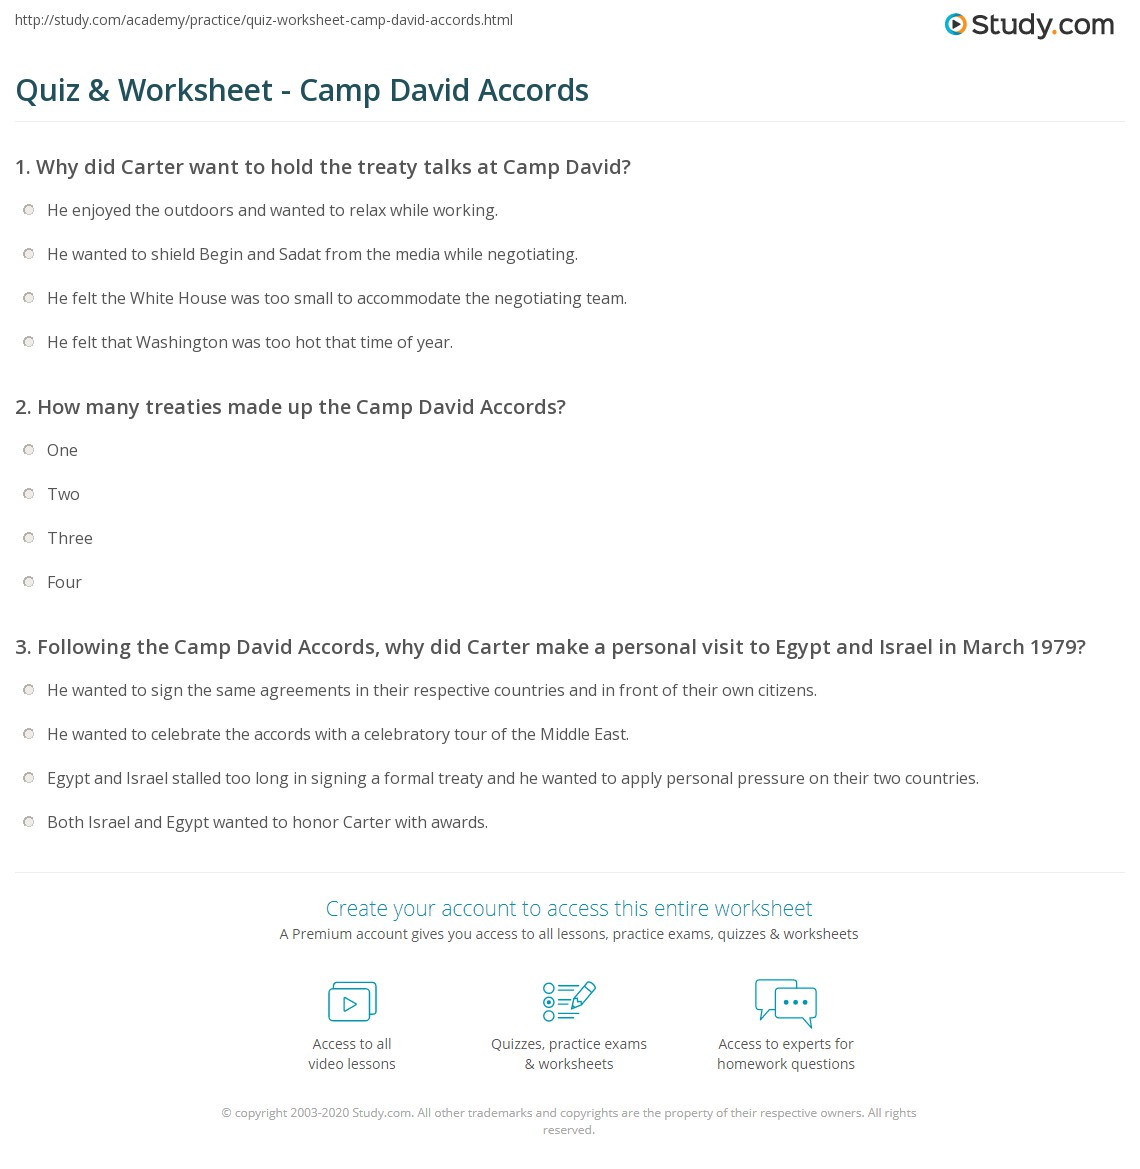 Workbooks to too and two worksheets : Quiz & Worksheet - Camp David Accords | Study.com